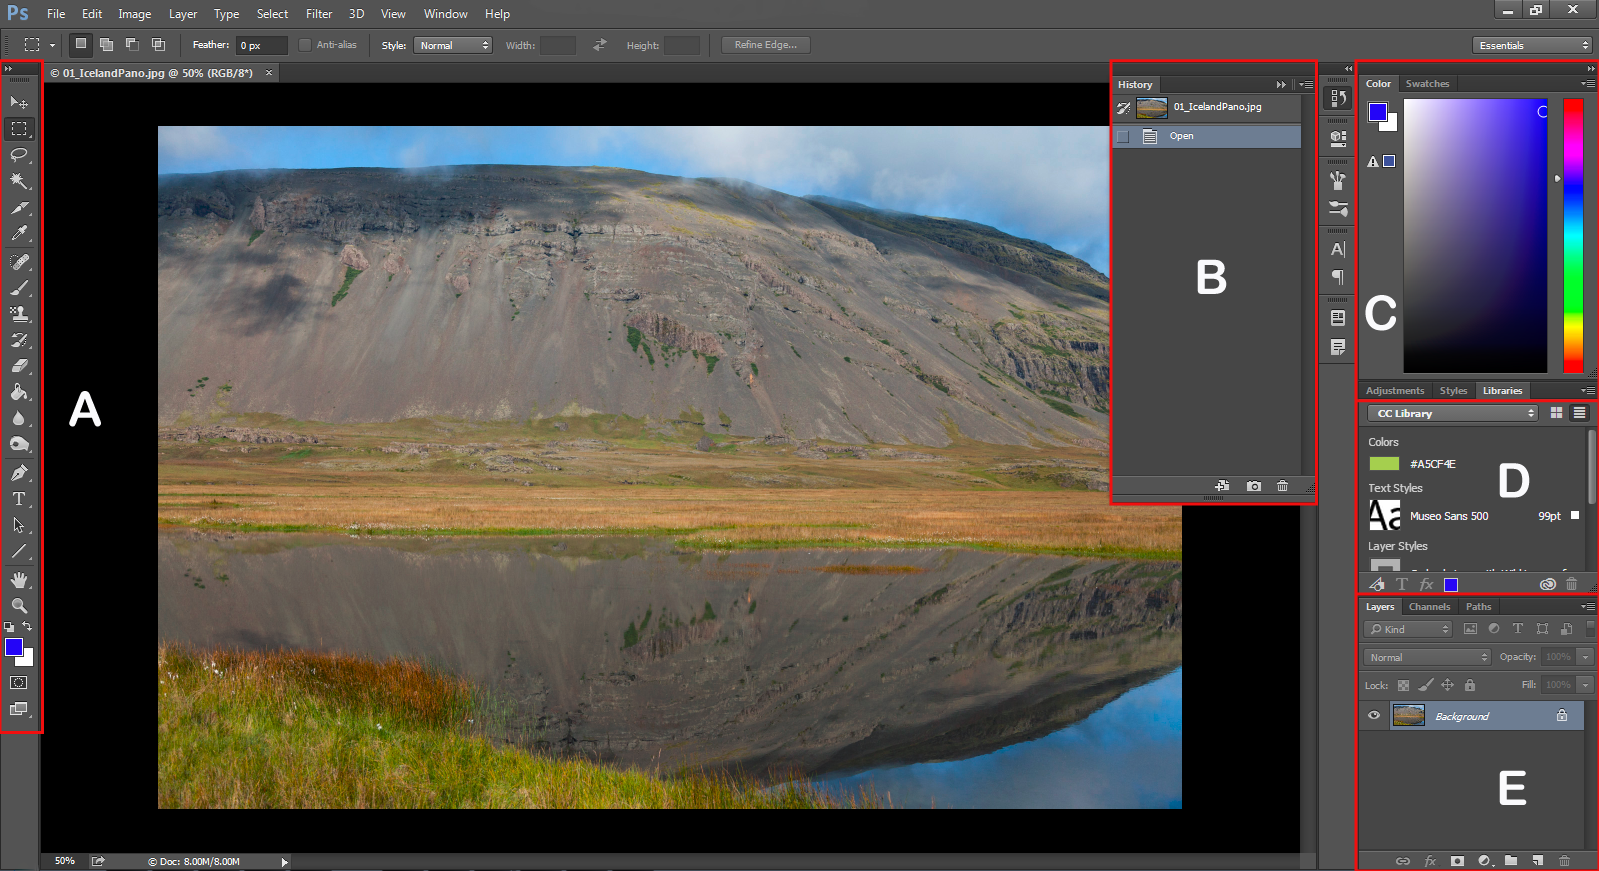 Adobe Photoshop, arriva la versione completa per iPad